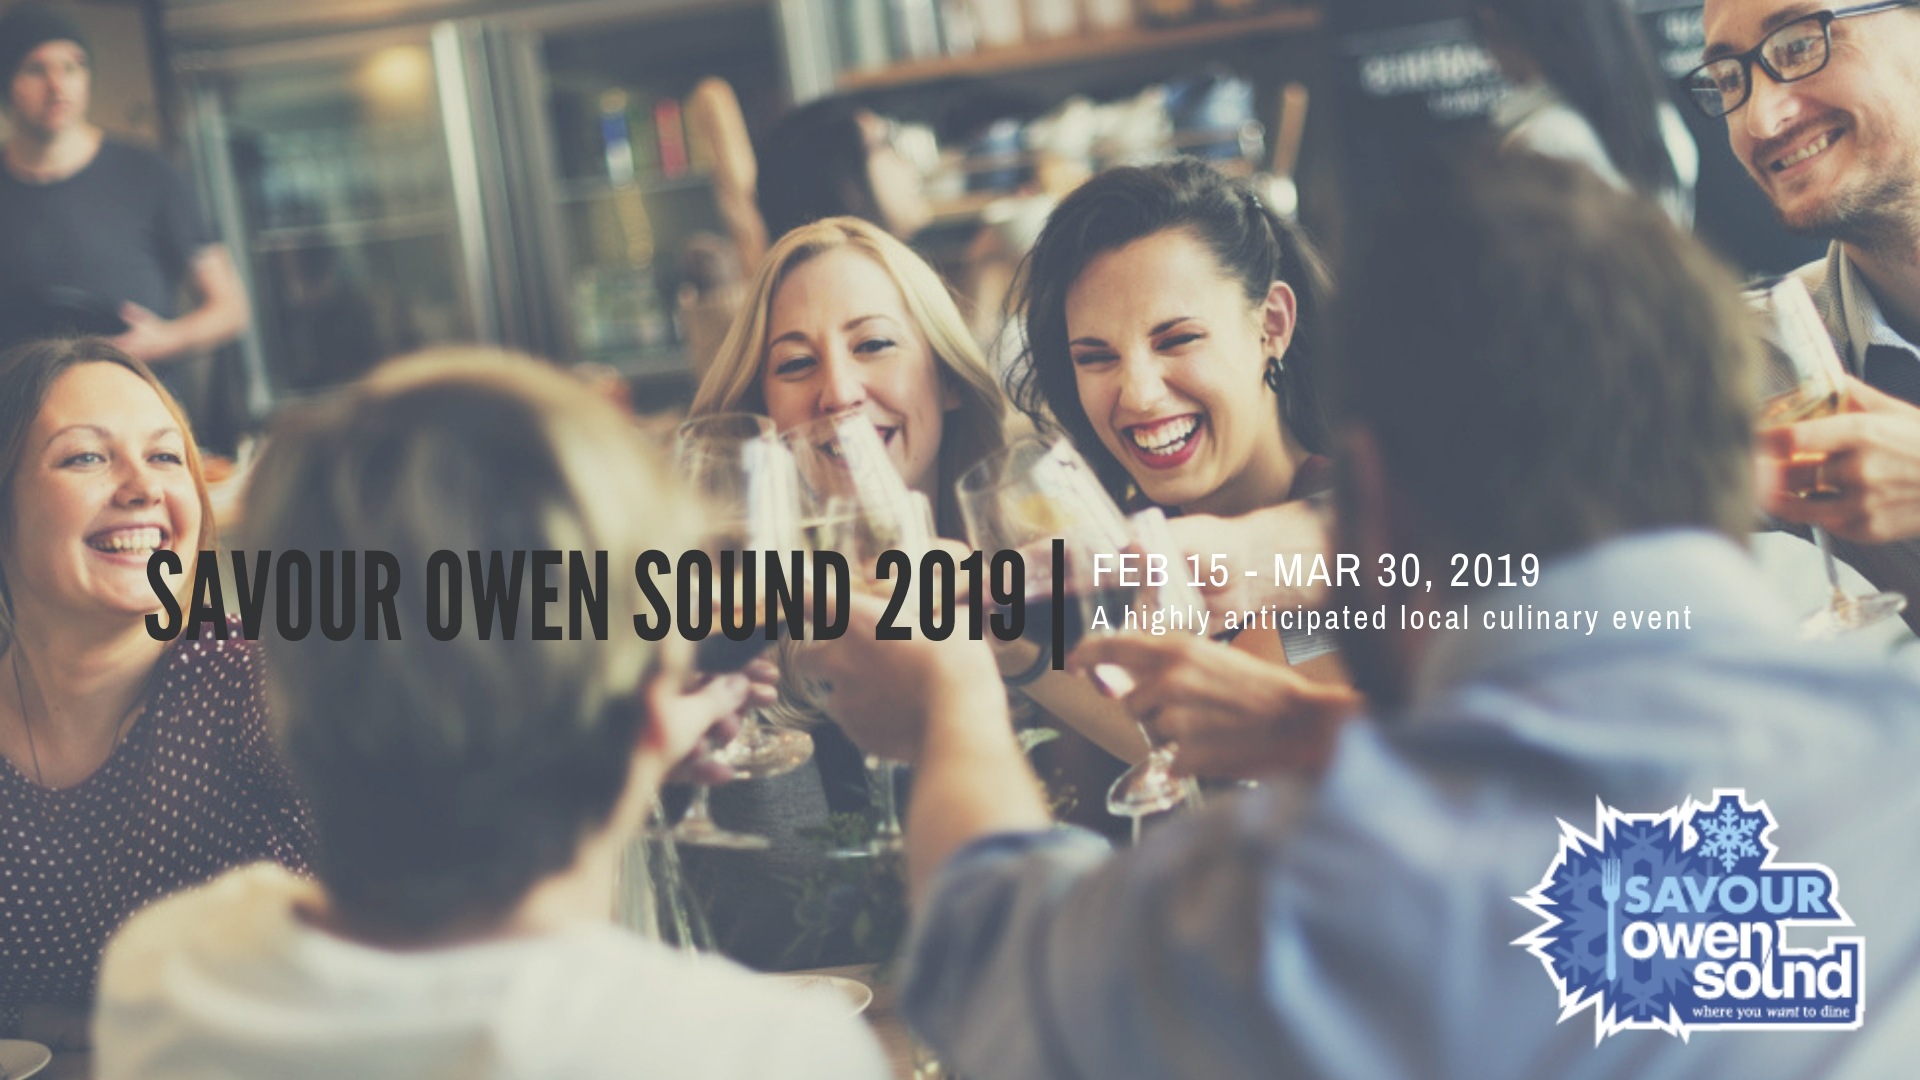 Savour Owen Sound 2019